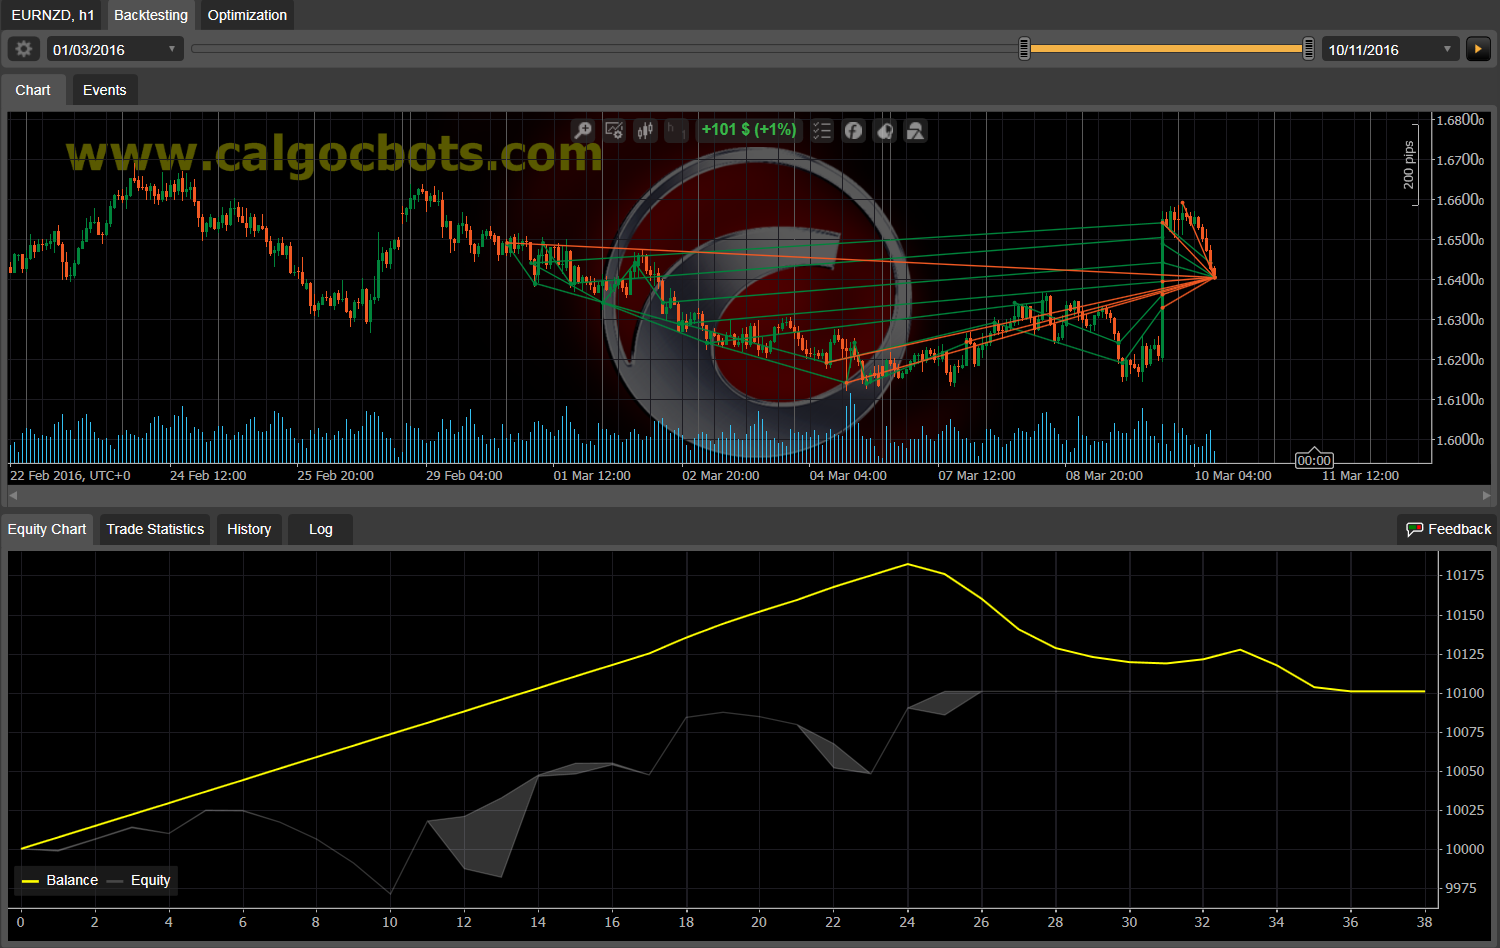 Dual Grid Hedge EUR NZD 1h cAlgo cBots cTrader 100 50 100 - 08 a